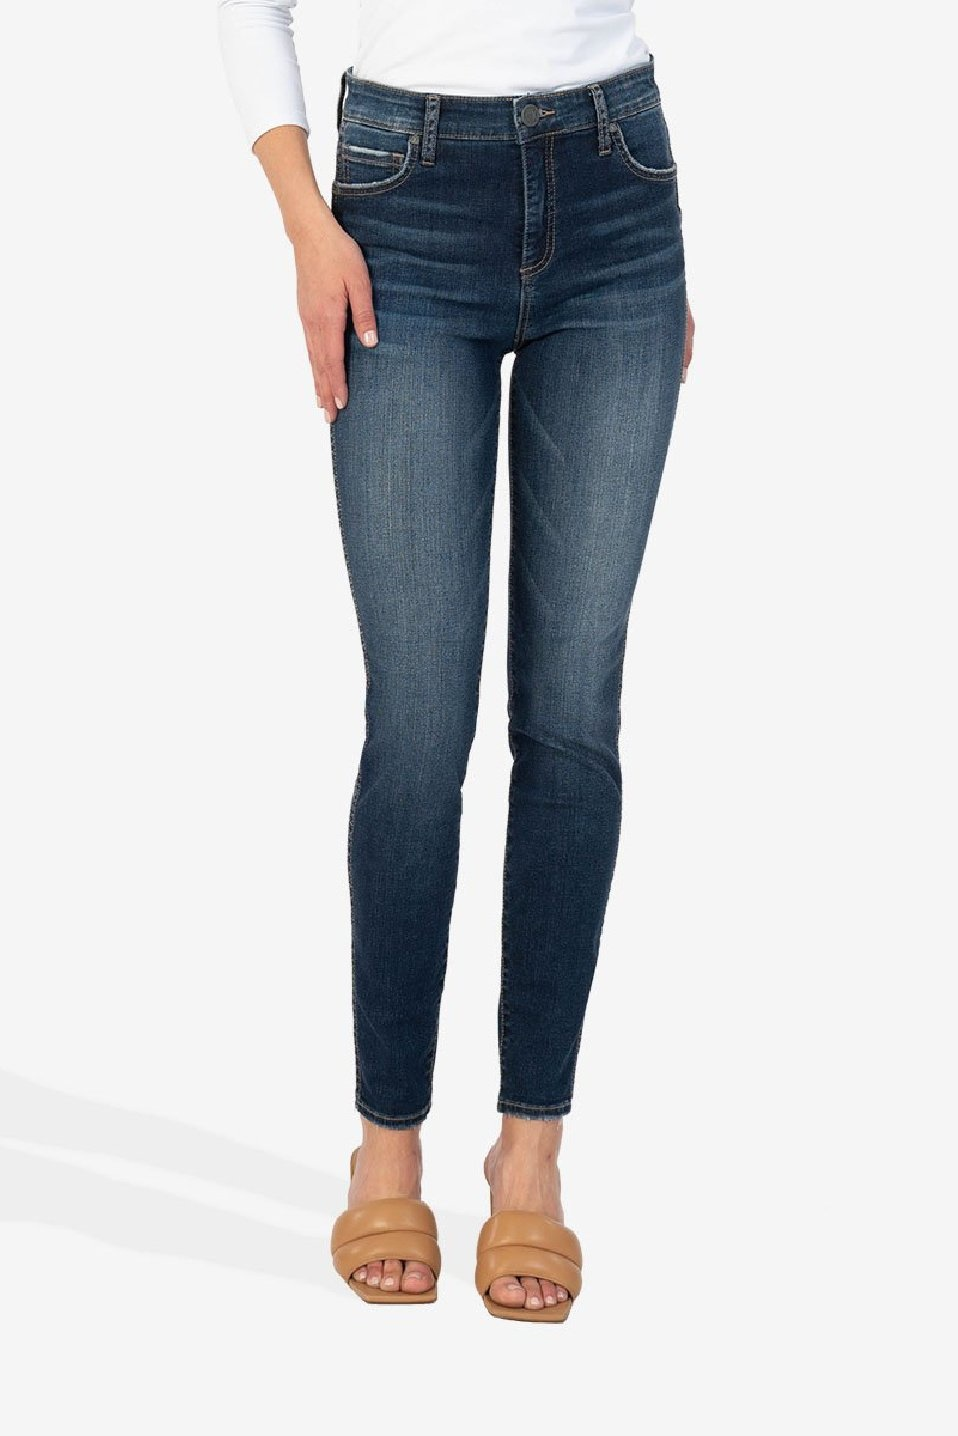 Kut from the Kloth Mia High Rise Fab AB Skinny